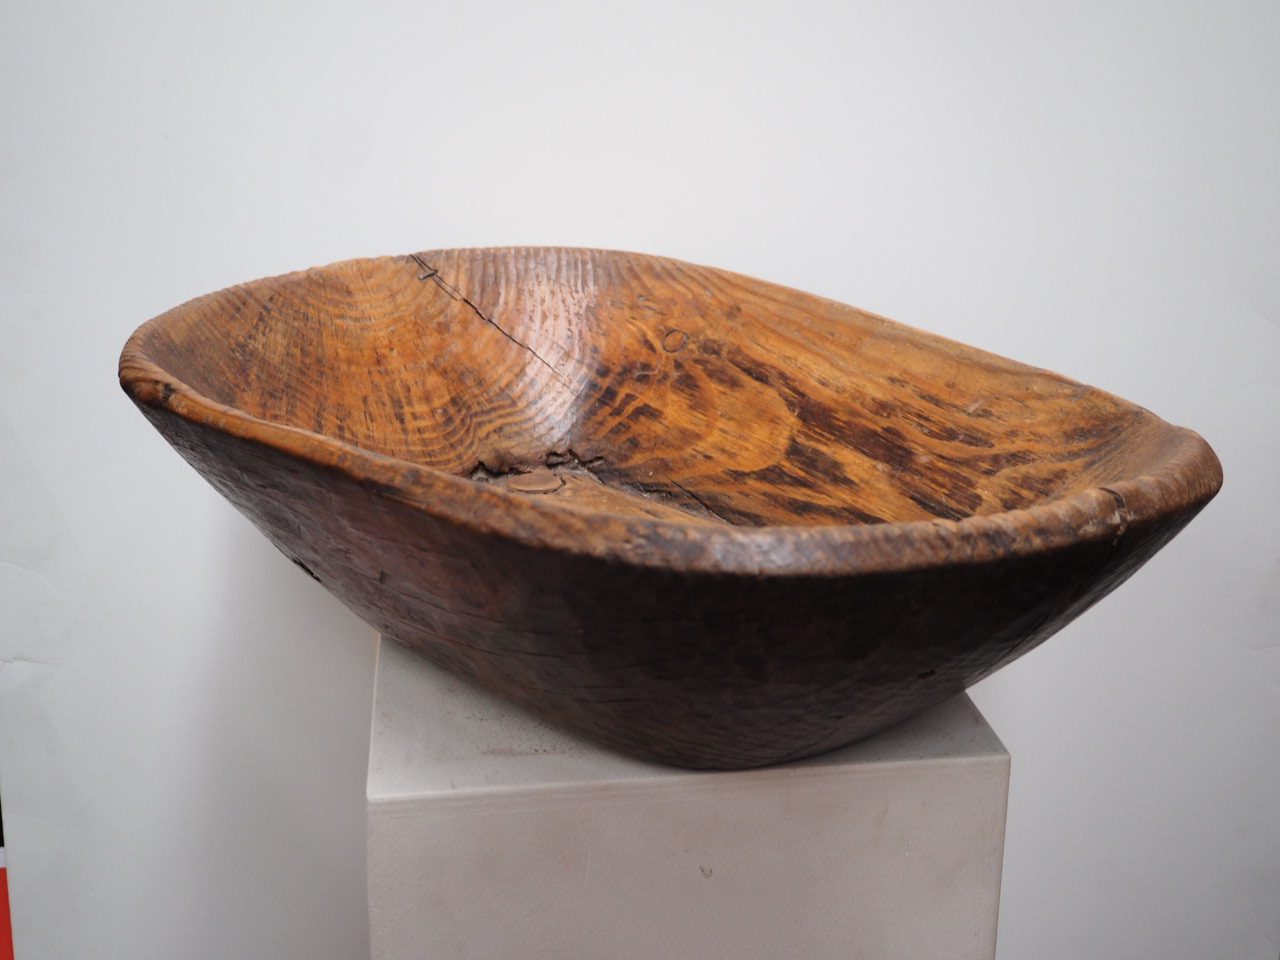 Ottoman period wooden food bowl